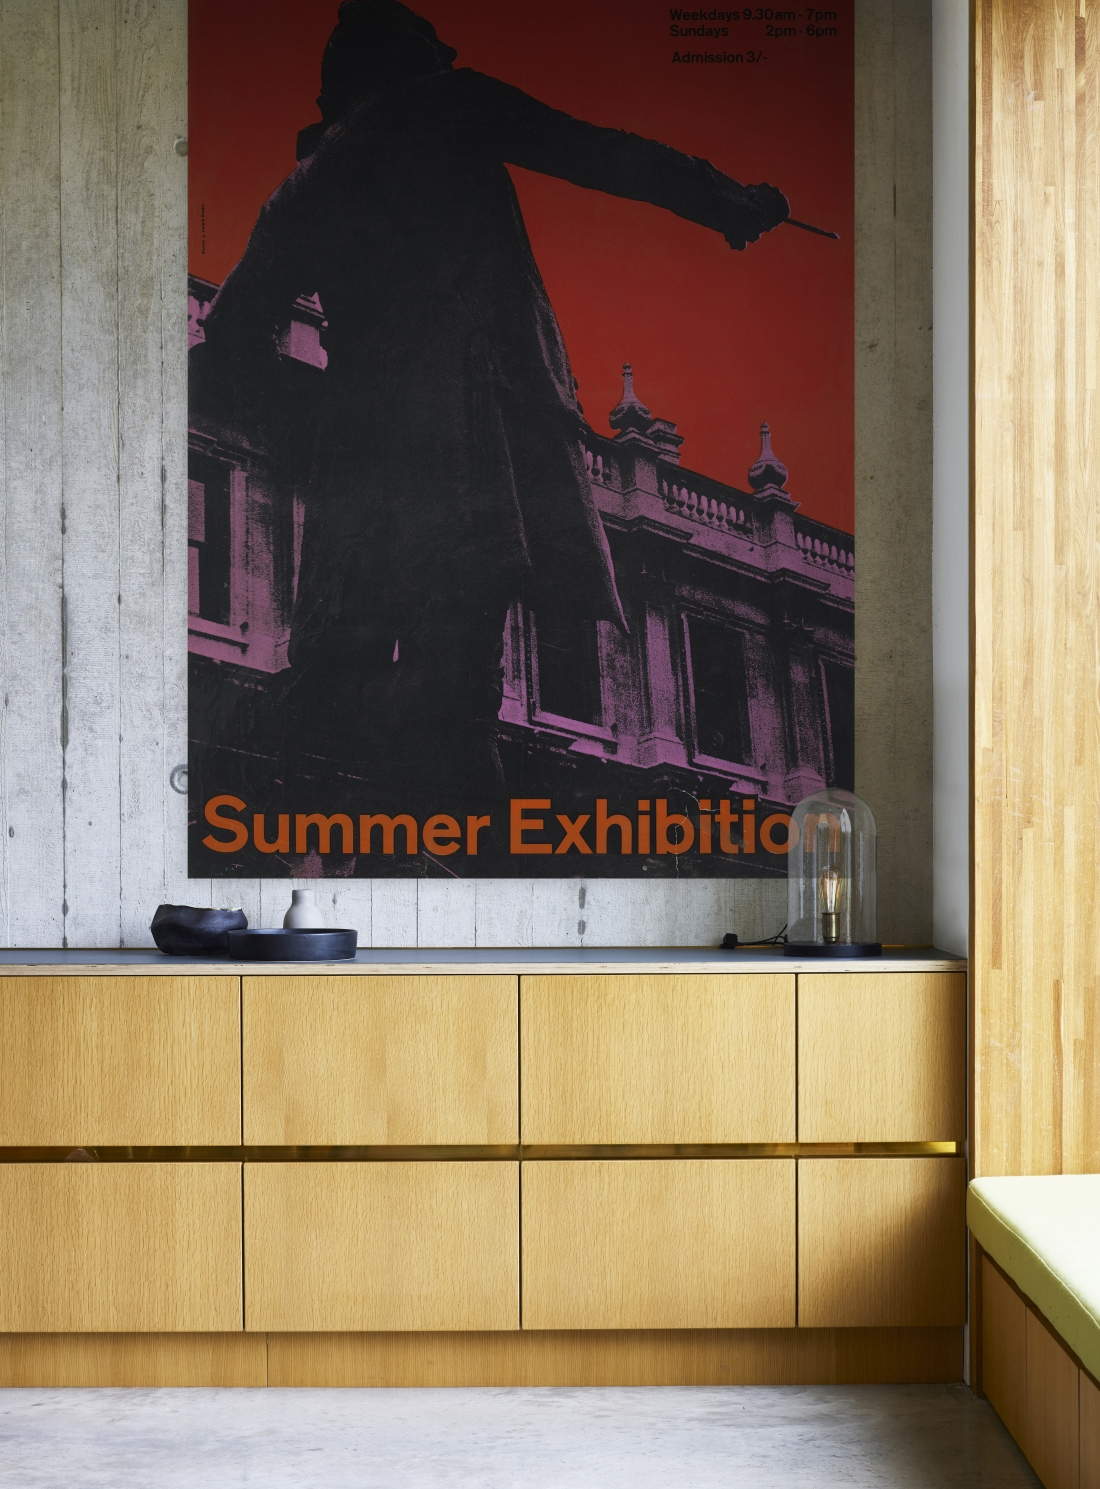 RA summer Exhibition 1963 Epic Poster ​from the Royal Academy of Arts Collection